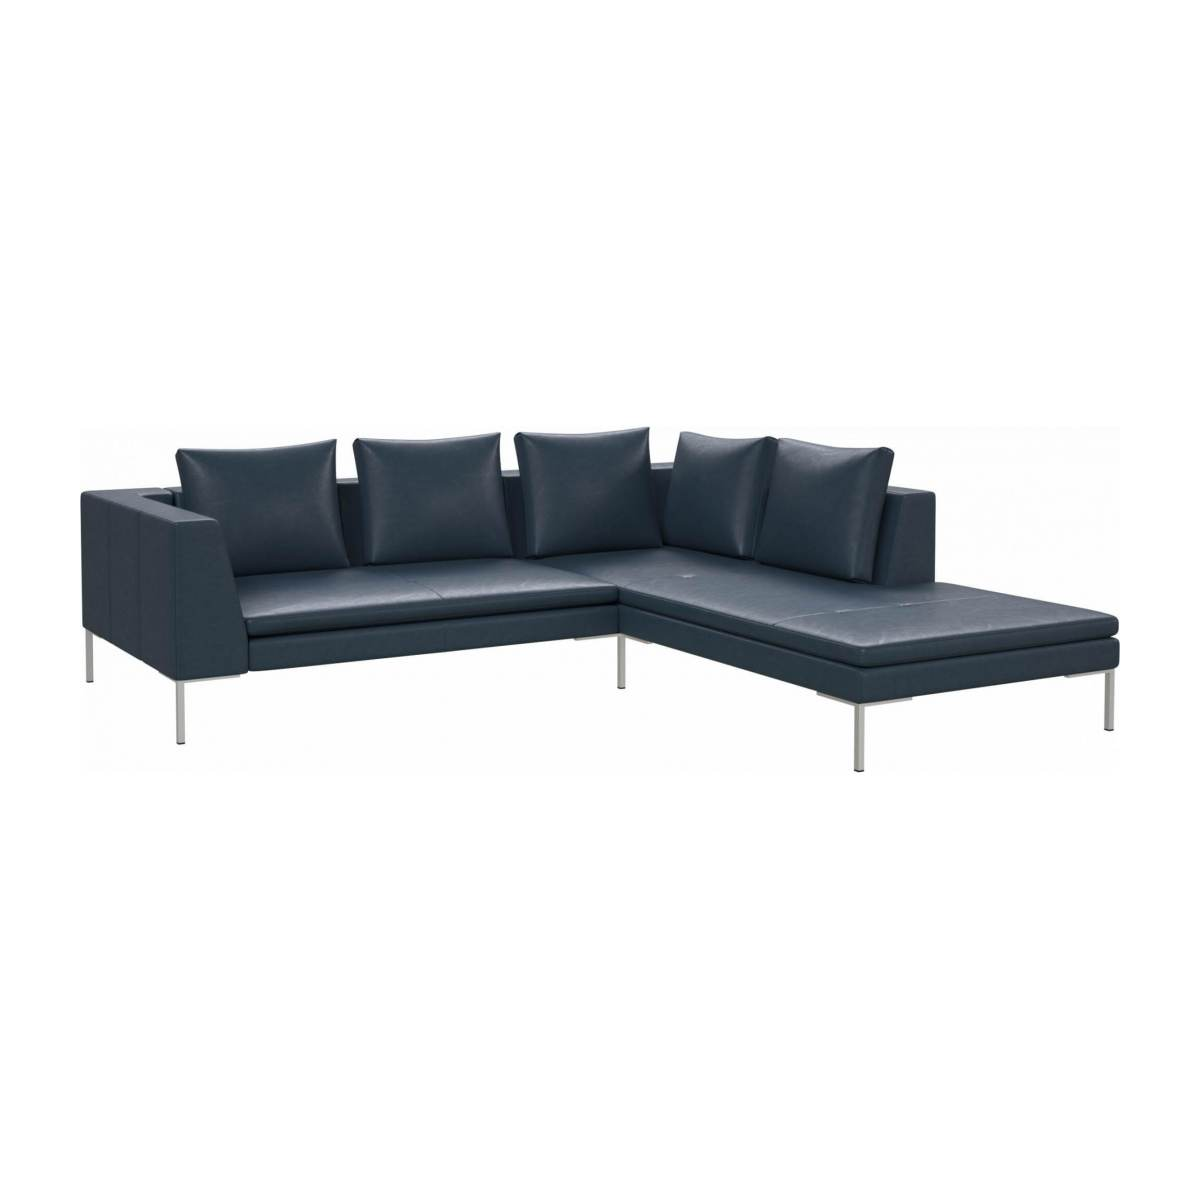 2 seater sofa with chaise longue on the right in Vintage aniline leather, denim blue  n°2